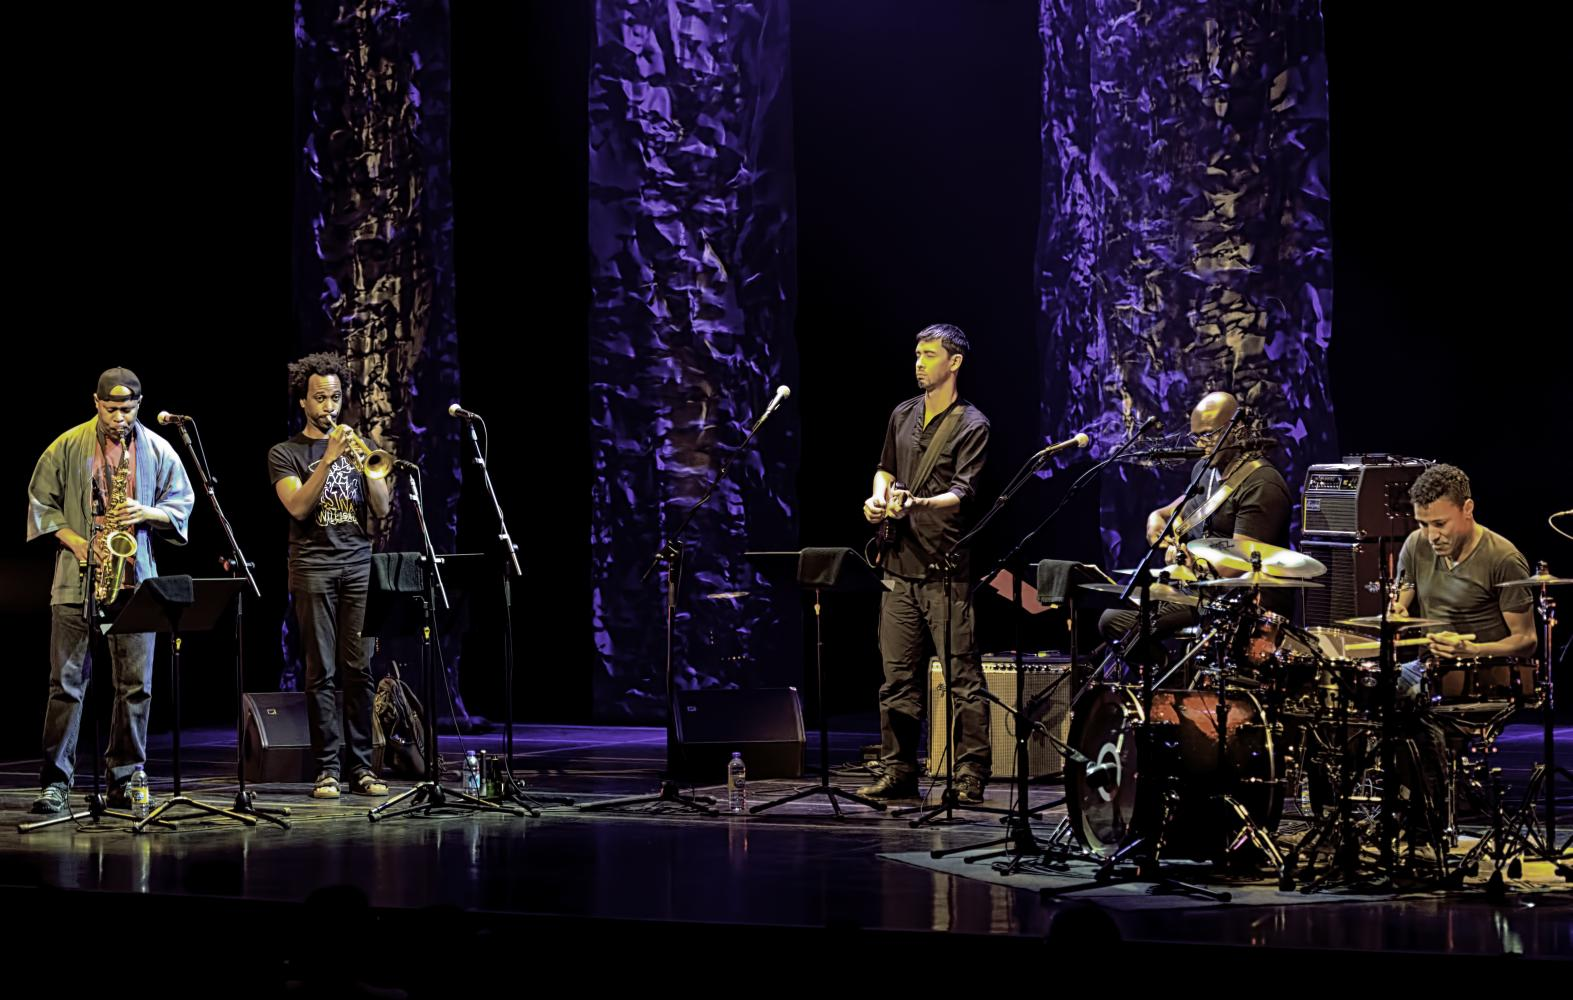 Steve Coleman, Jonathan Finlayson, Miles Okazaki, Anthony Tidd And Sean Rickman With Five Elements At The Montreal International Jazz Festival 2016